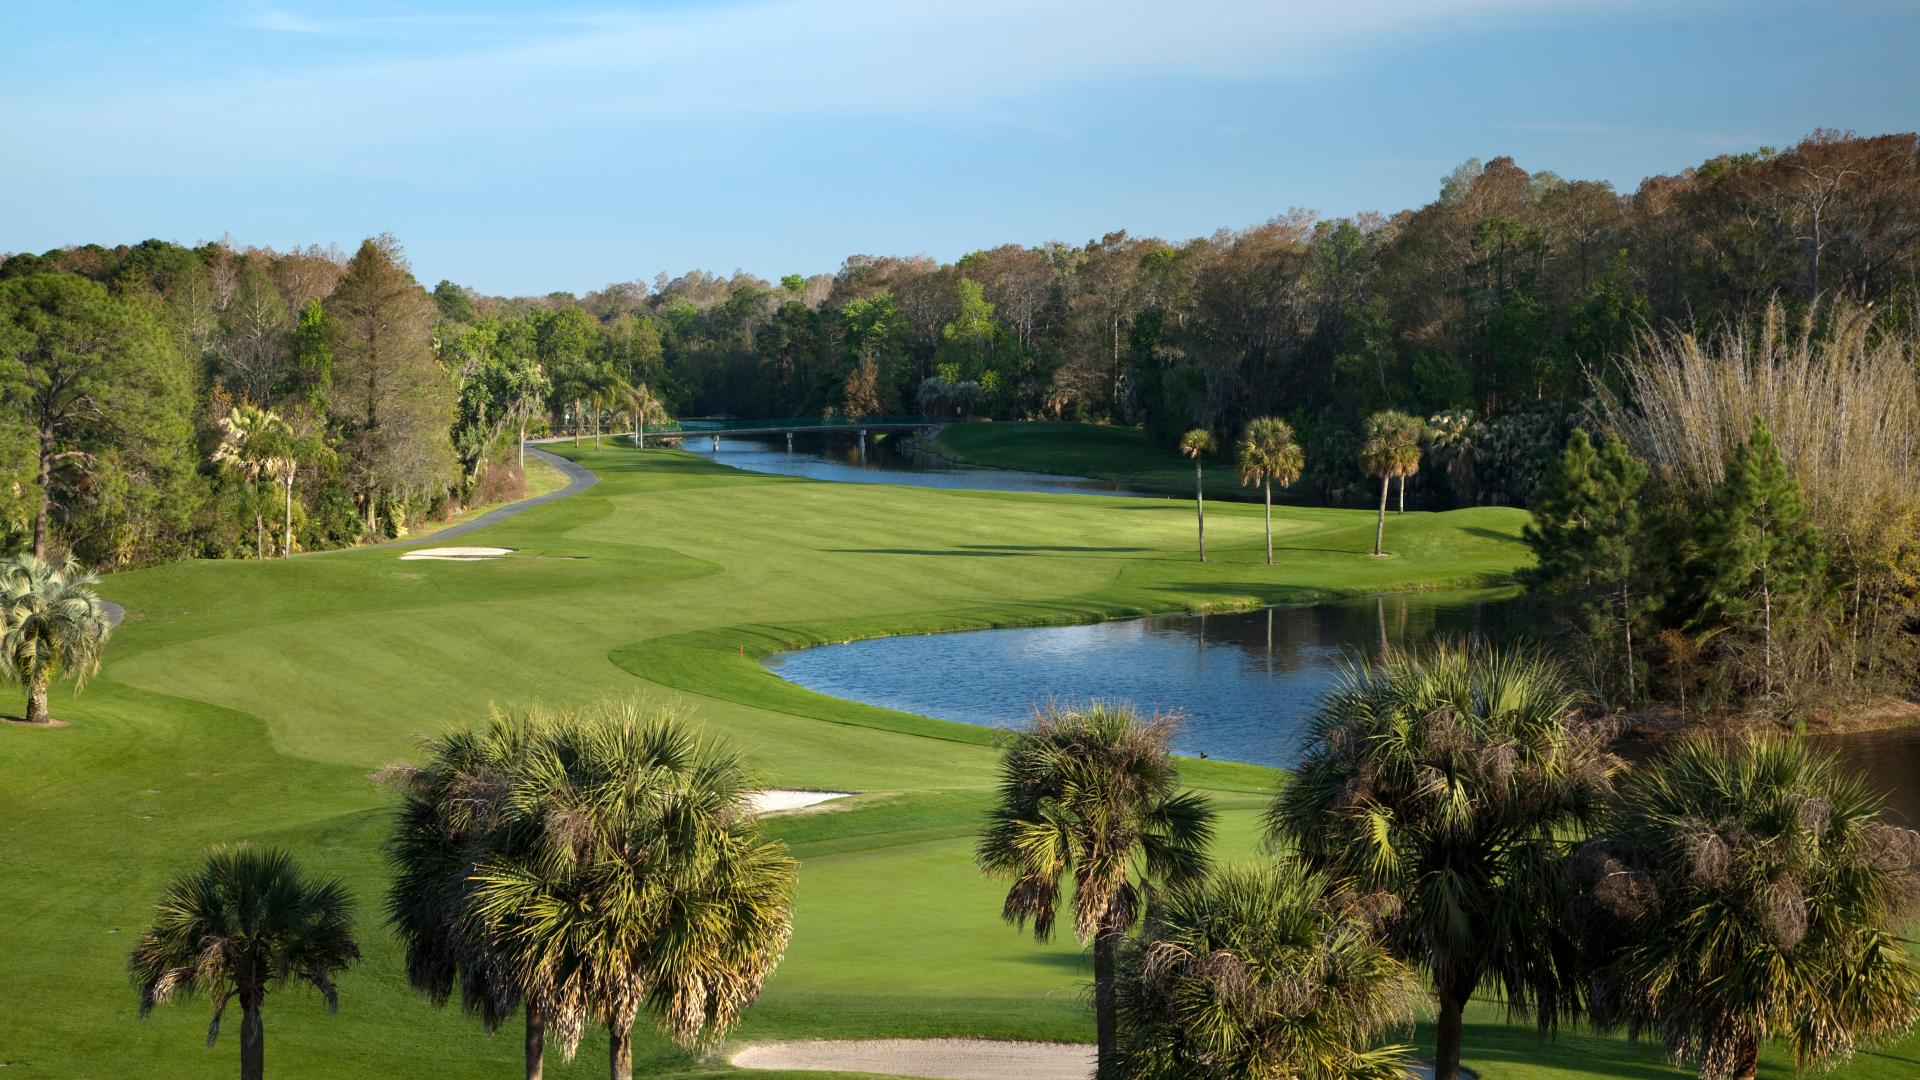 Future Nicklaus design 18-hole golf course for residents